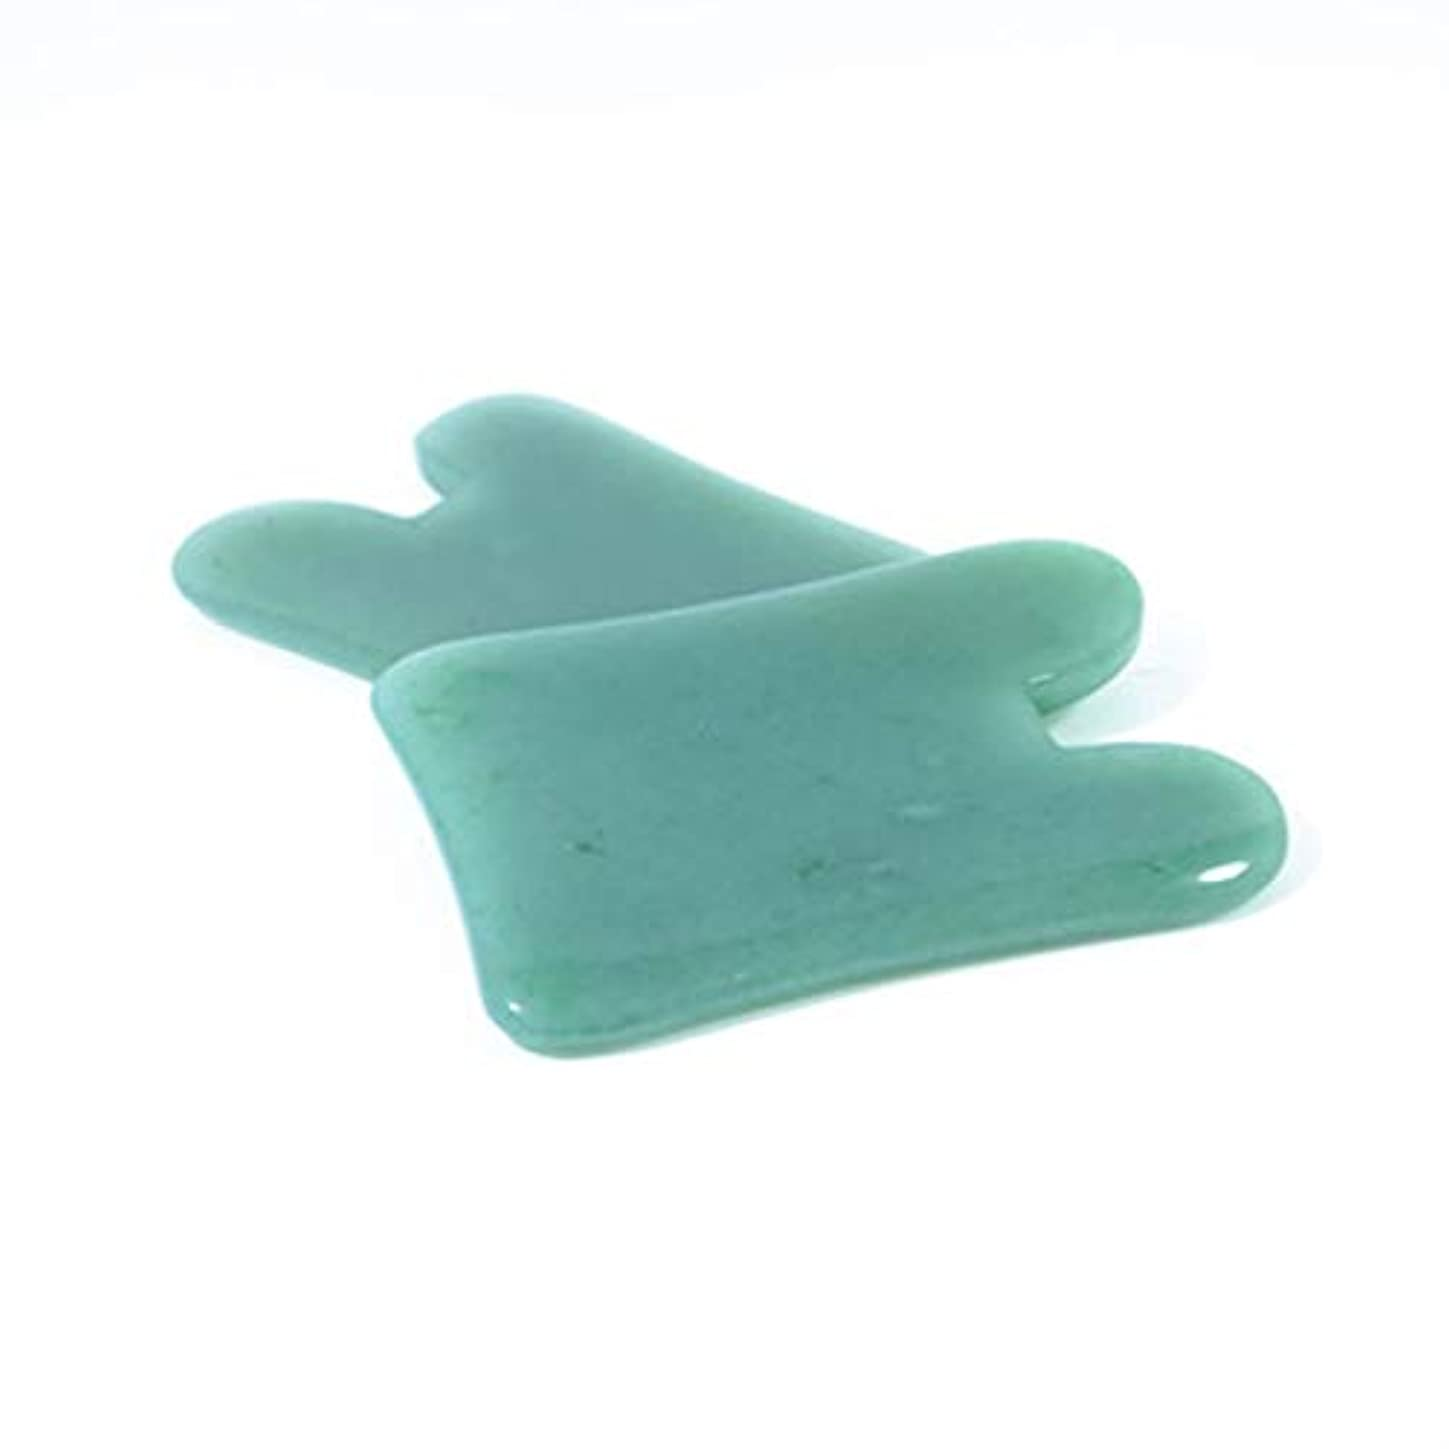 医療過誤ホスト天窓Natural Portable Size Gua Sha Facial Treatment Massage Tool Chinese Natural Jade Scraping Tools Massage Healing...